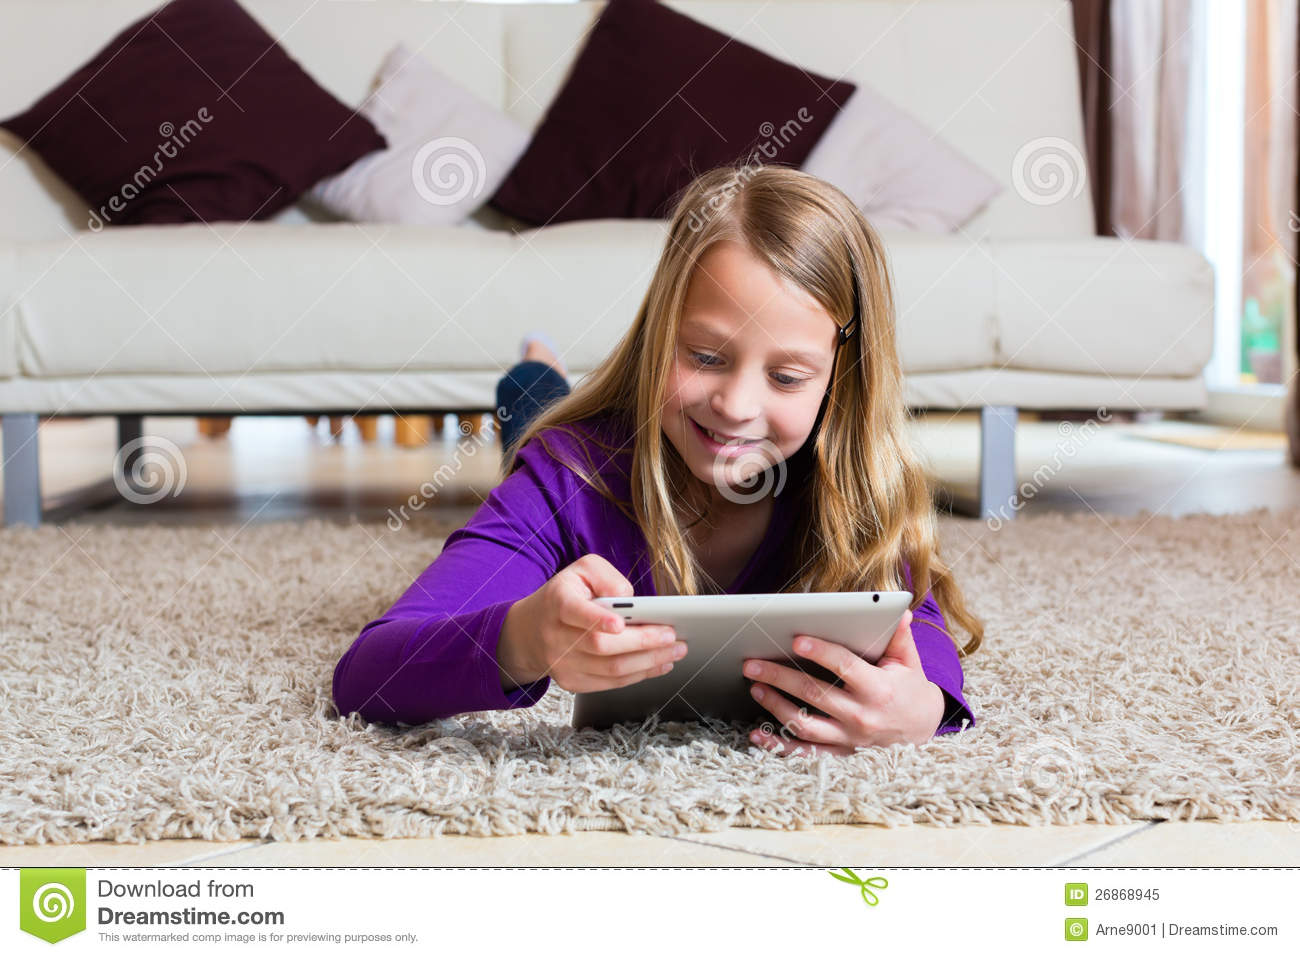 Royalty Free Stock Photo Family Child Playing Tablet  puter Pad Image26868945 on design floor plan symbol for audio